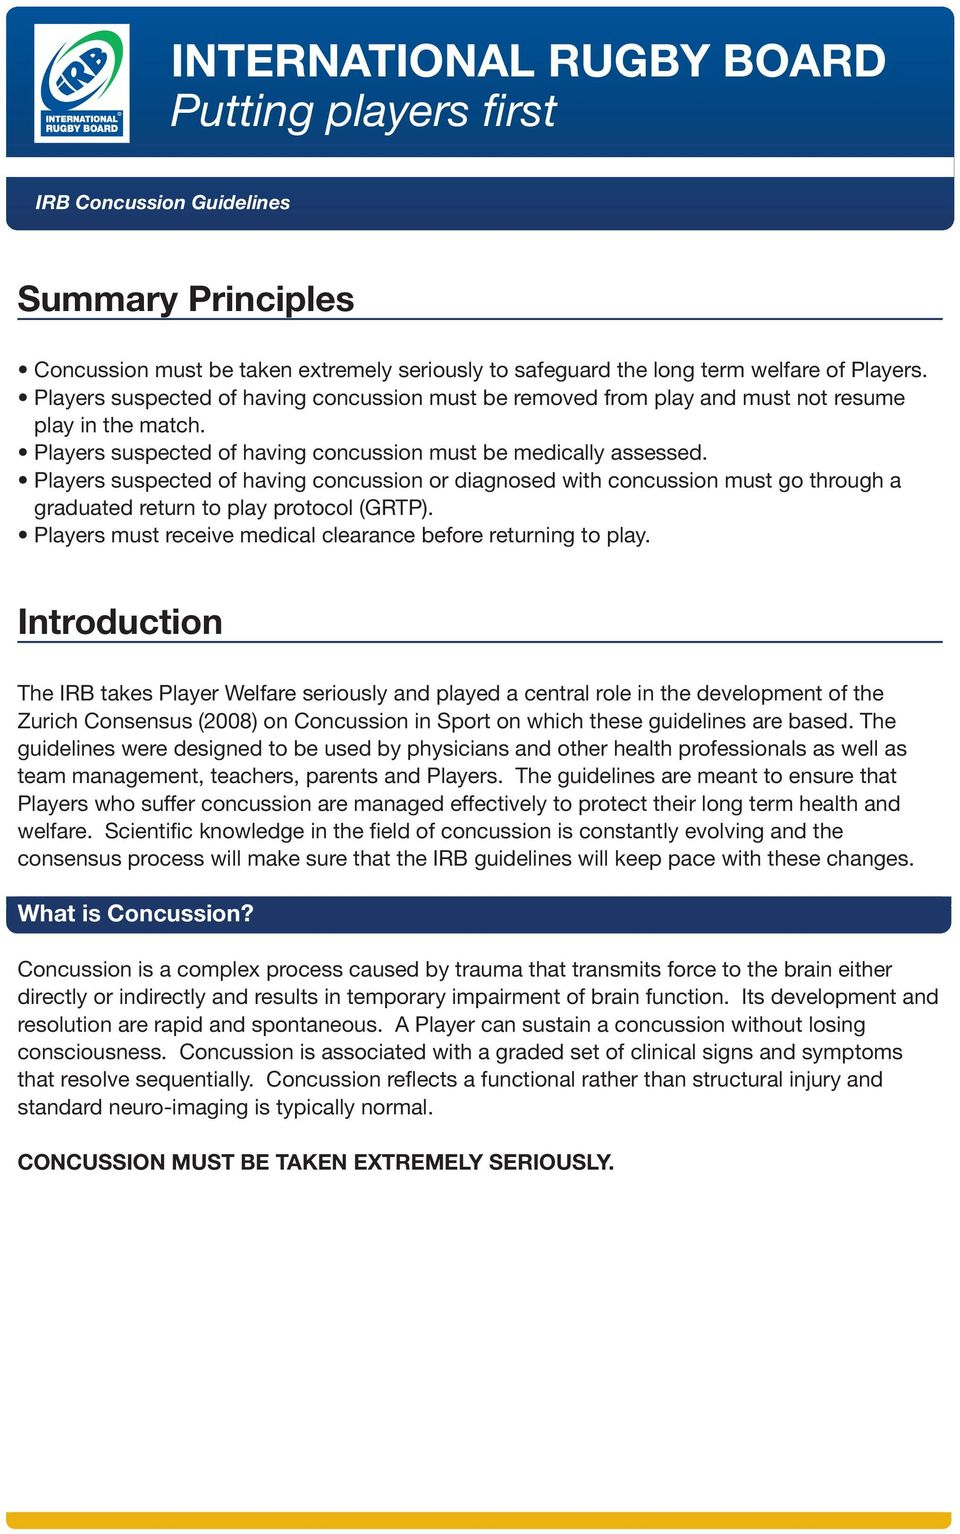 Players suspected of having concussion or diagnosed with concussion must go through a graduated return to play protocol (GRTP). Players must receive medical clearance before returning to play.